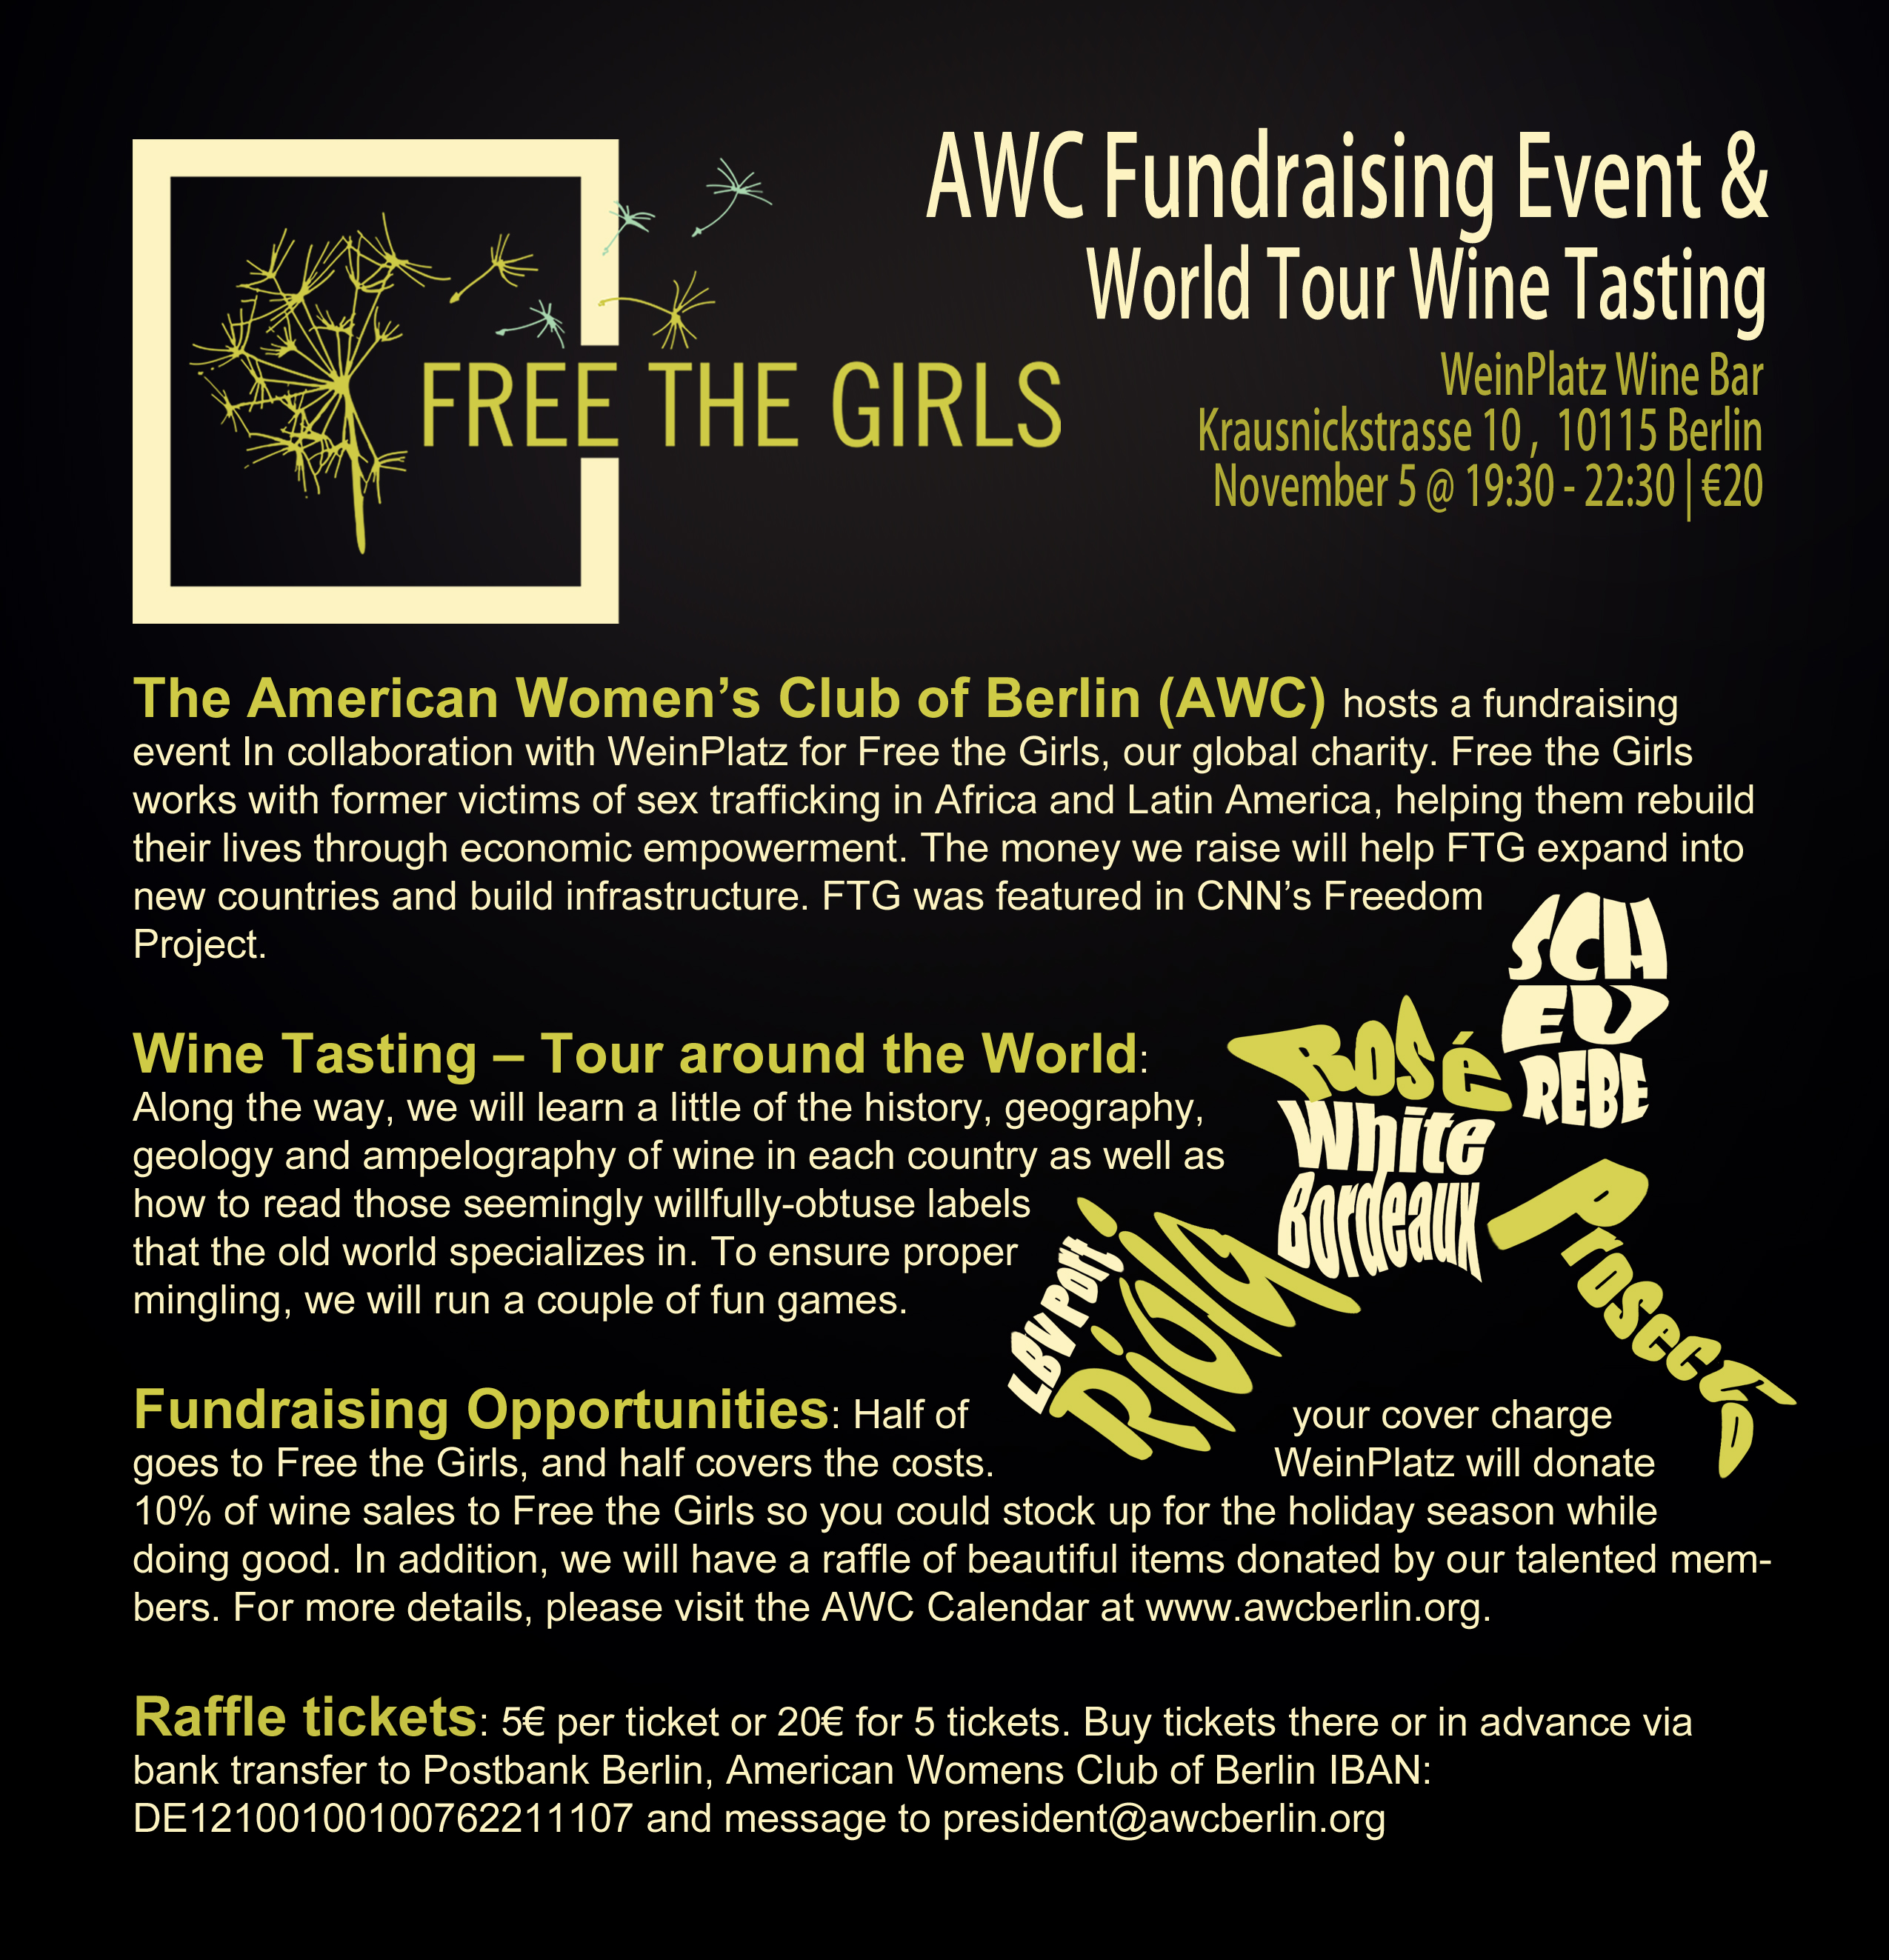 Fundraising event in Berlin for Free the Girls with great raffle